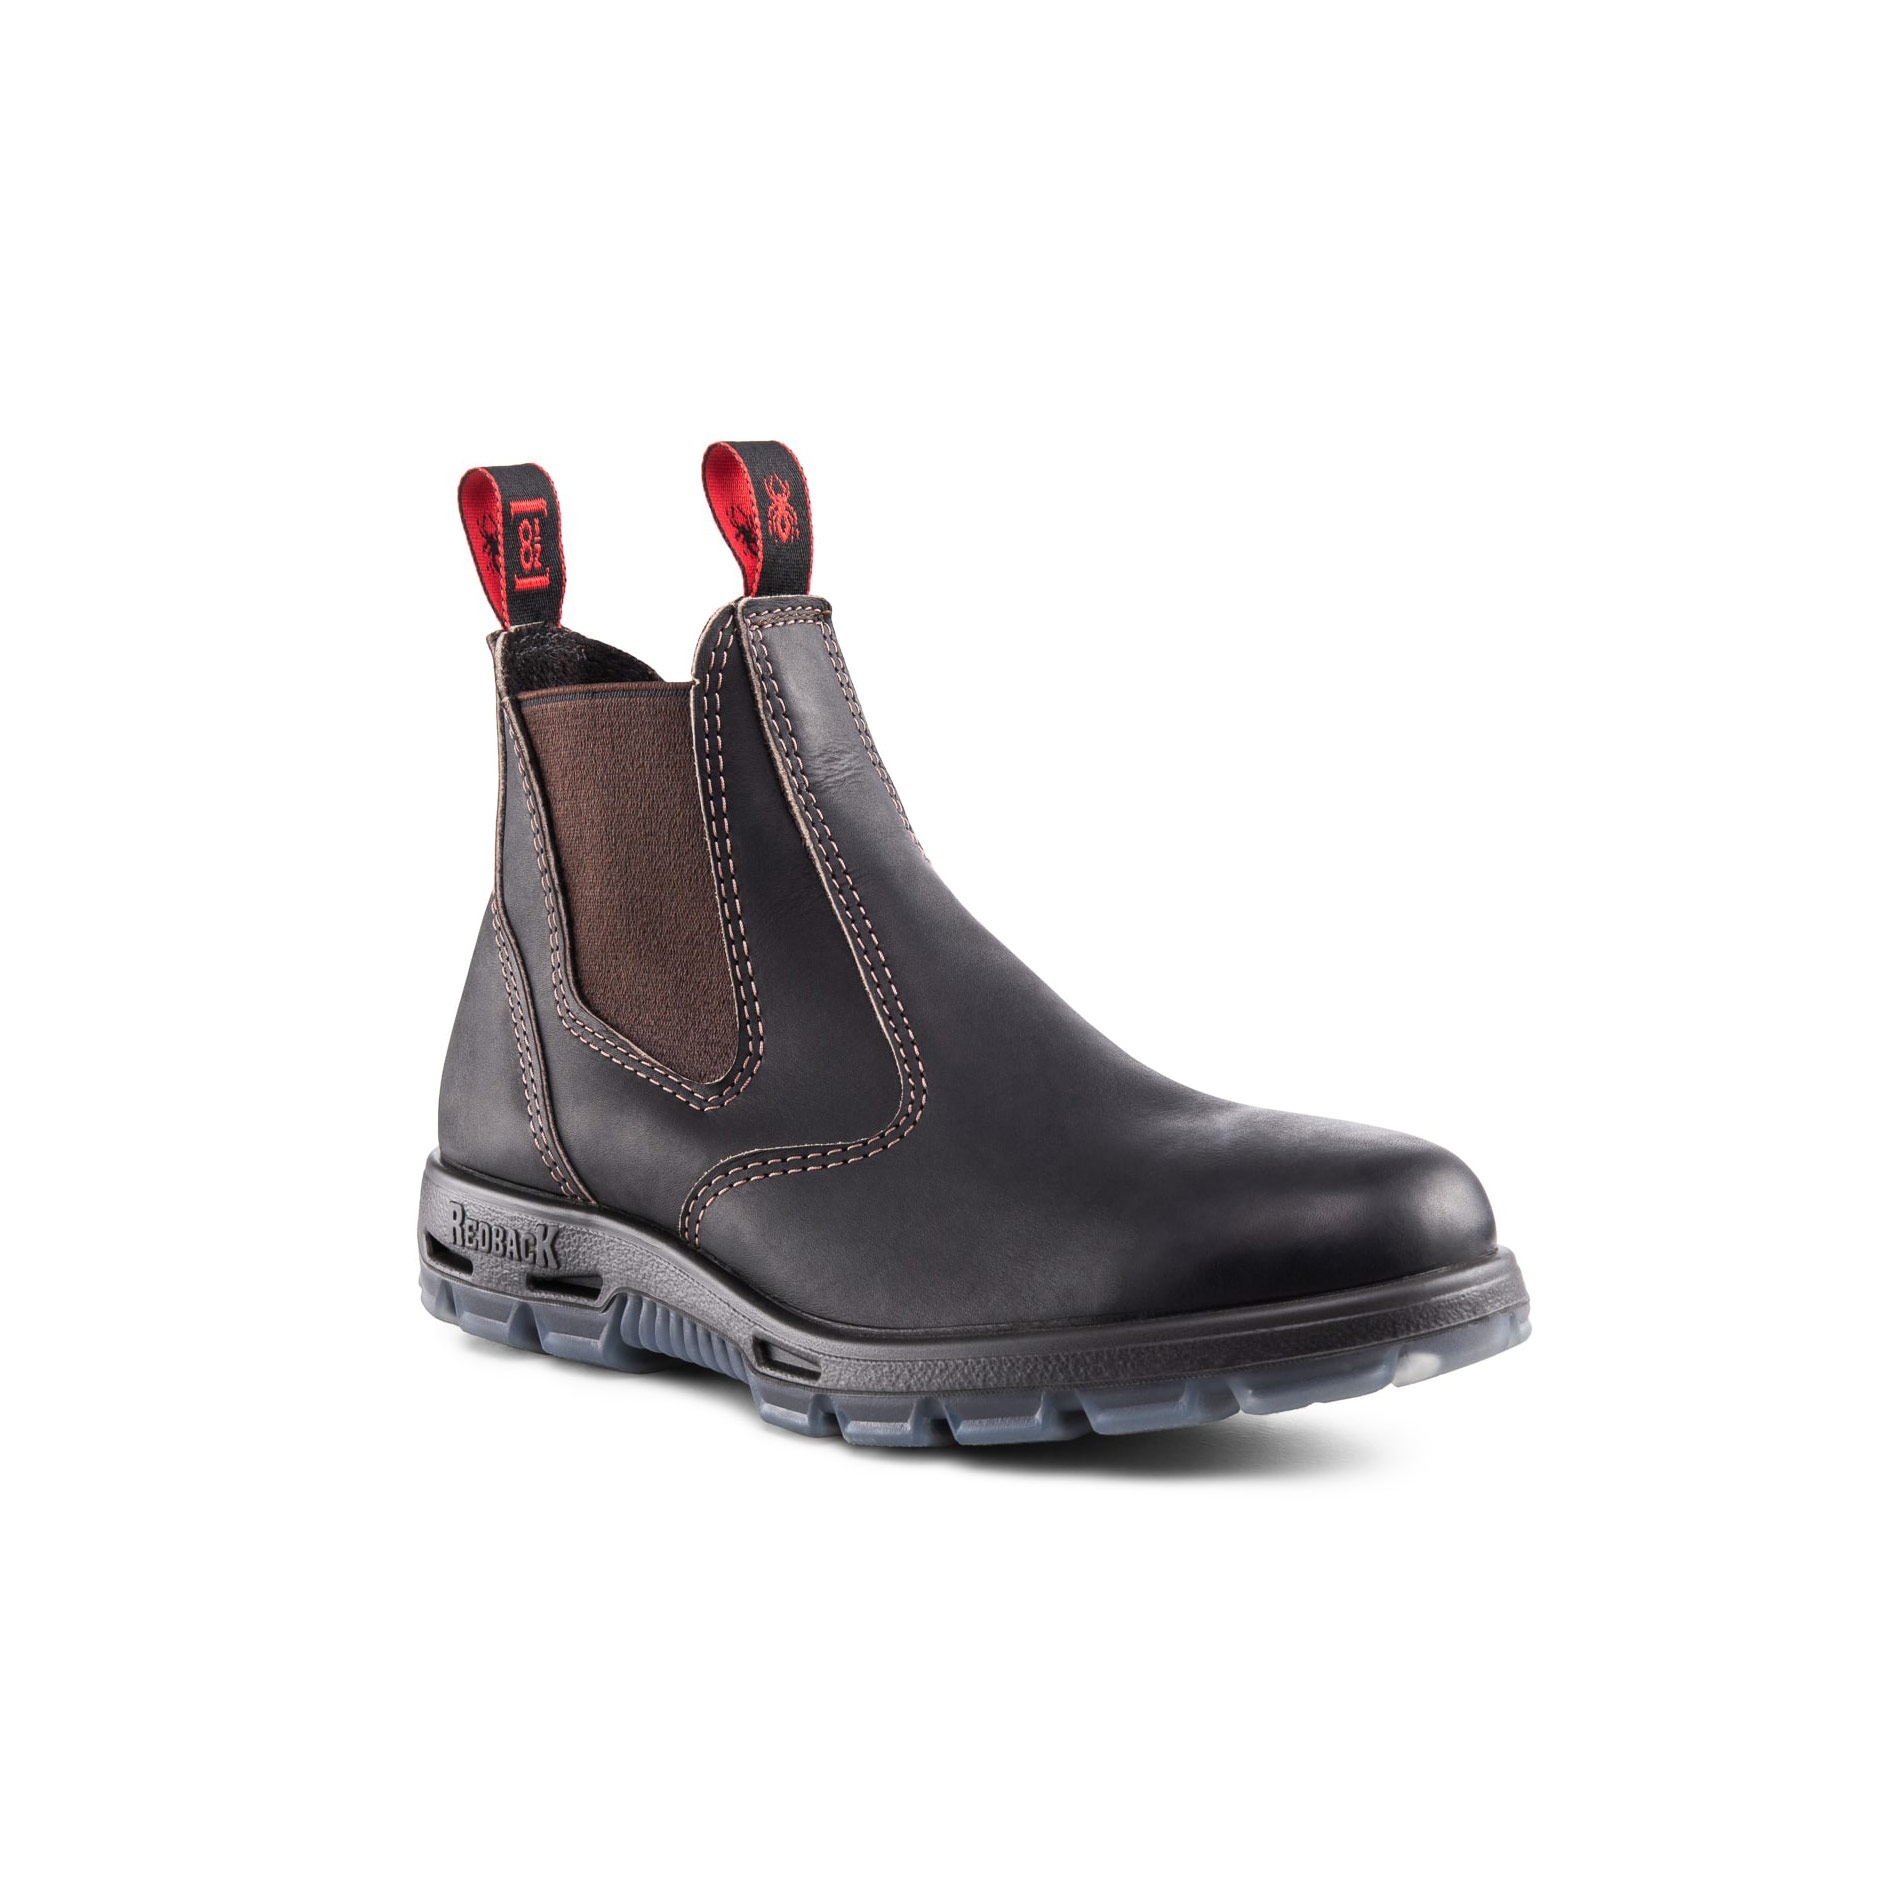 Bobcat Soft Toe Boot Claret - Men's